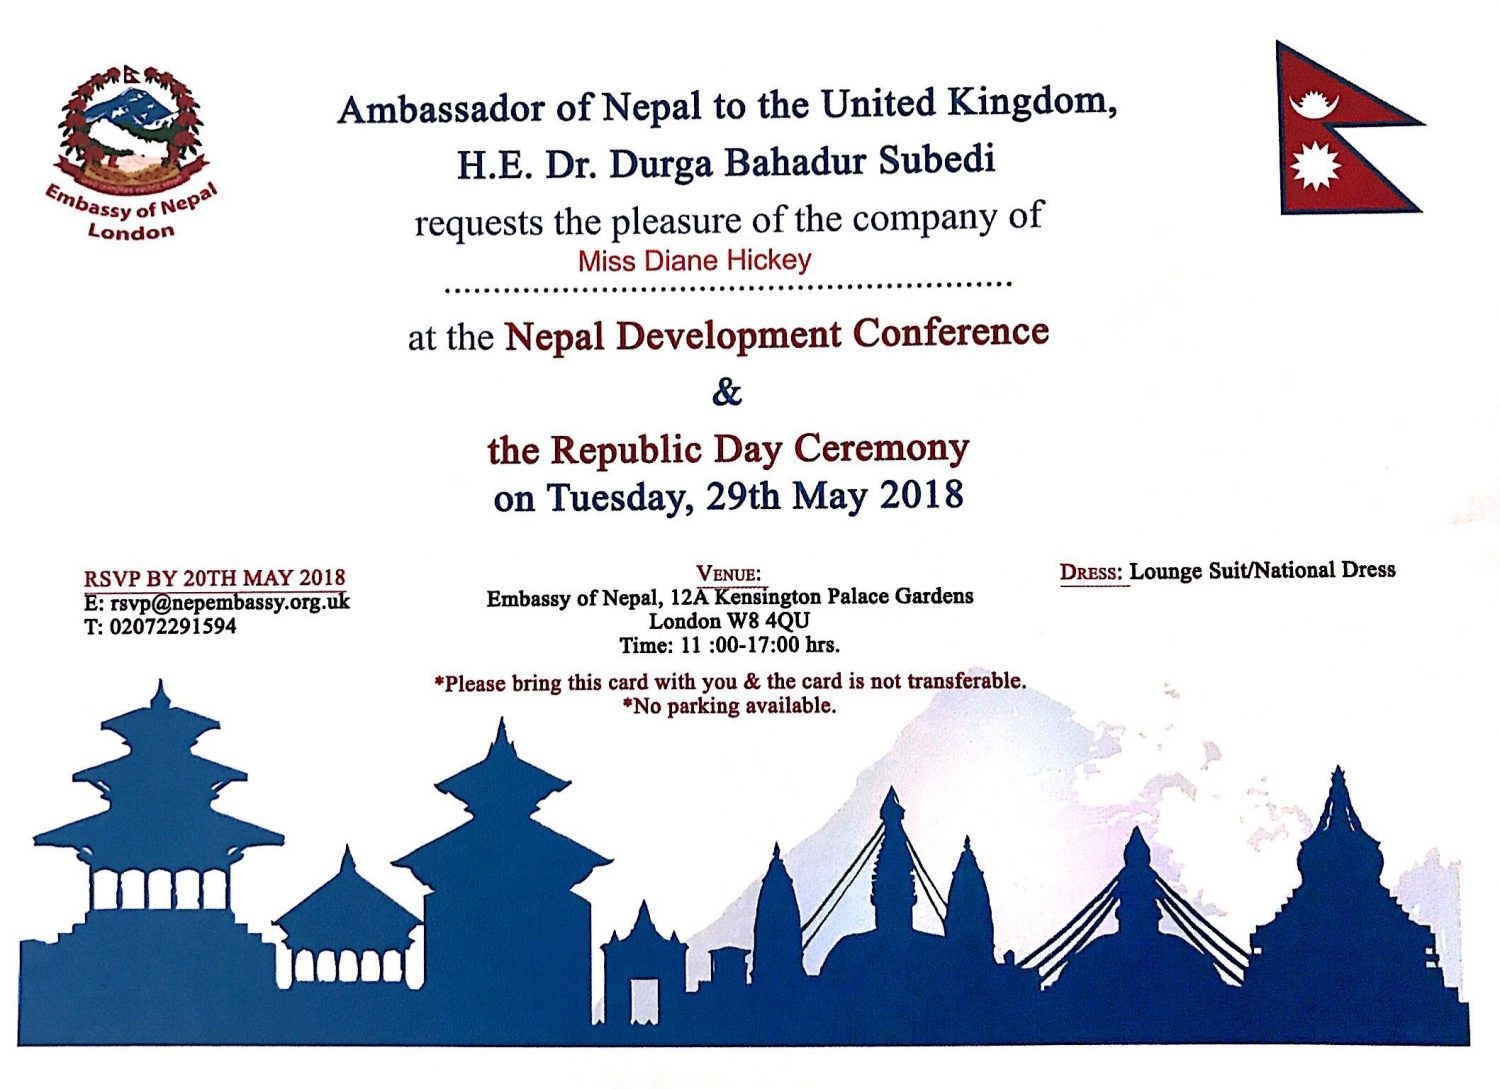 The Republic Day Ceremony and Nepal Development Conference